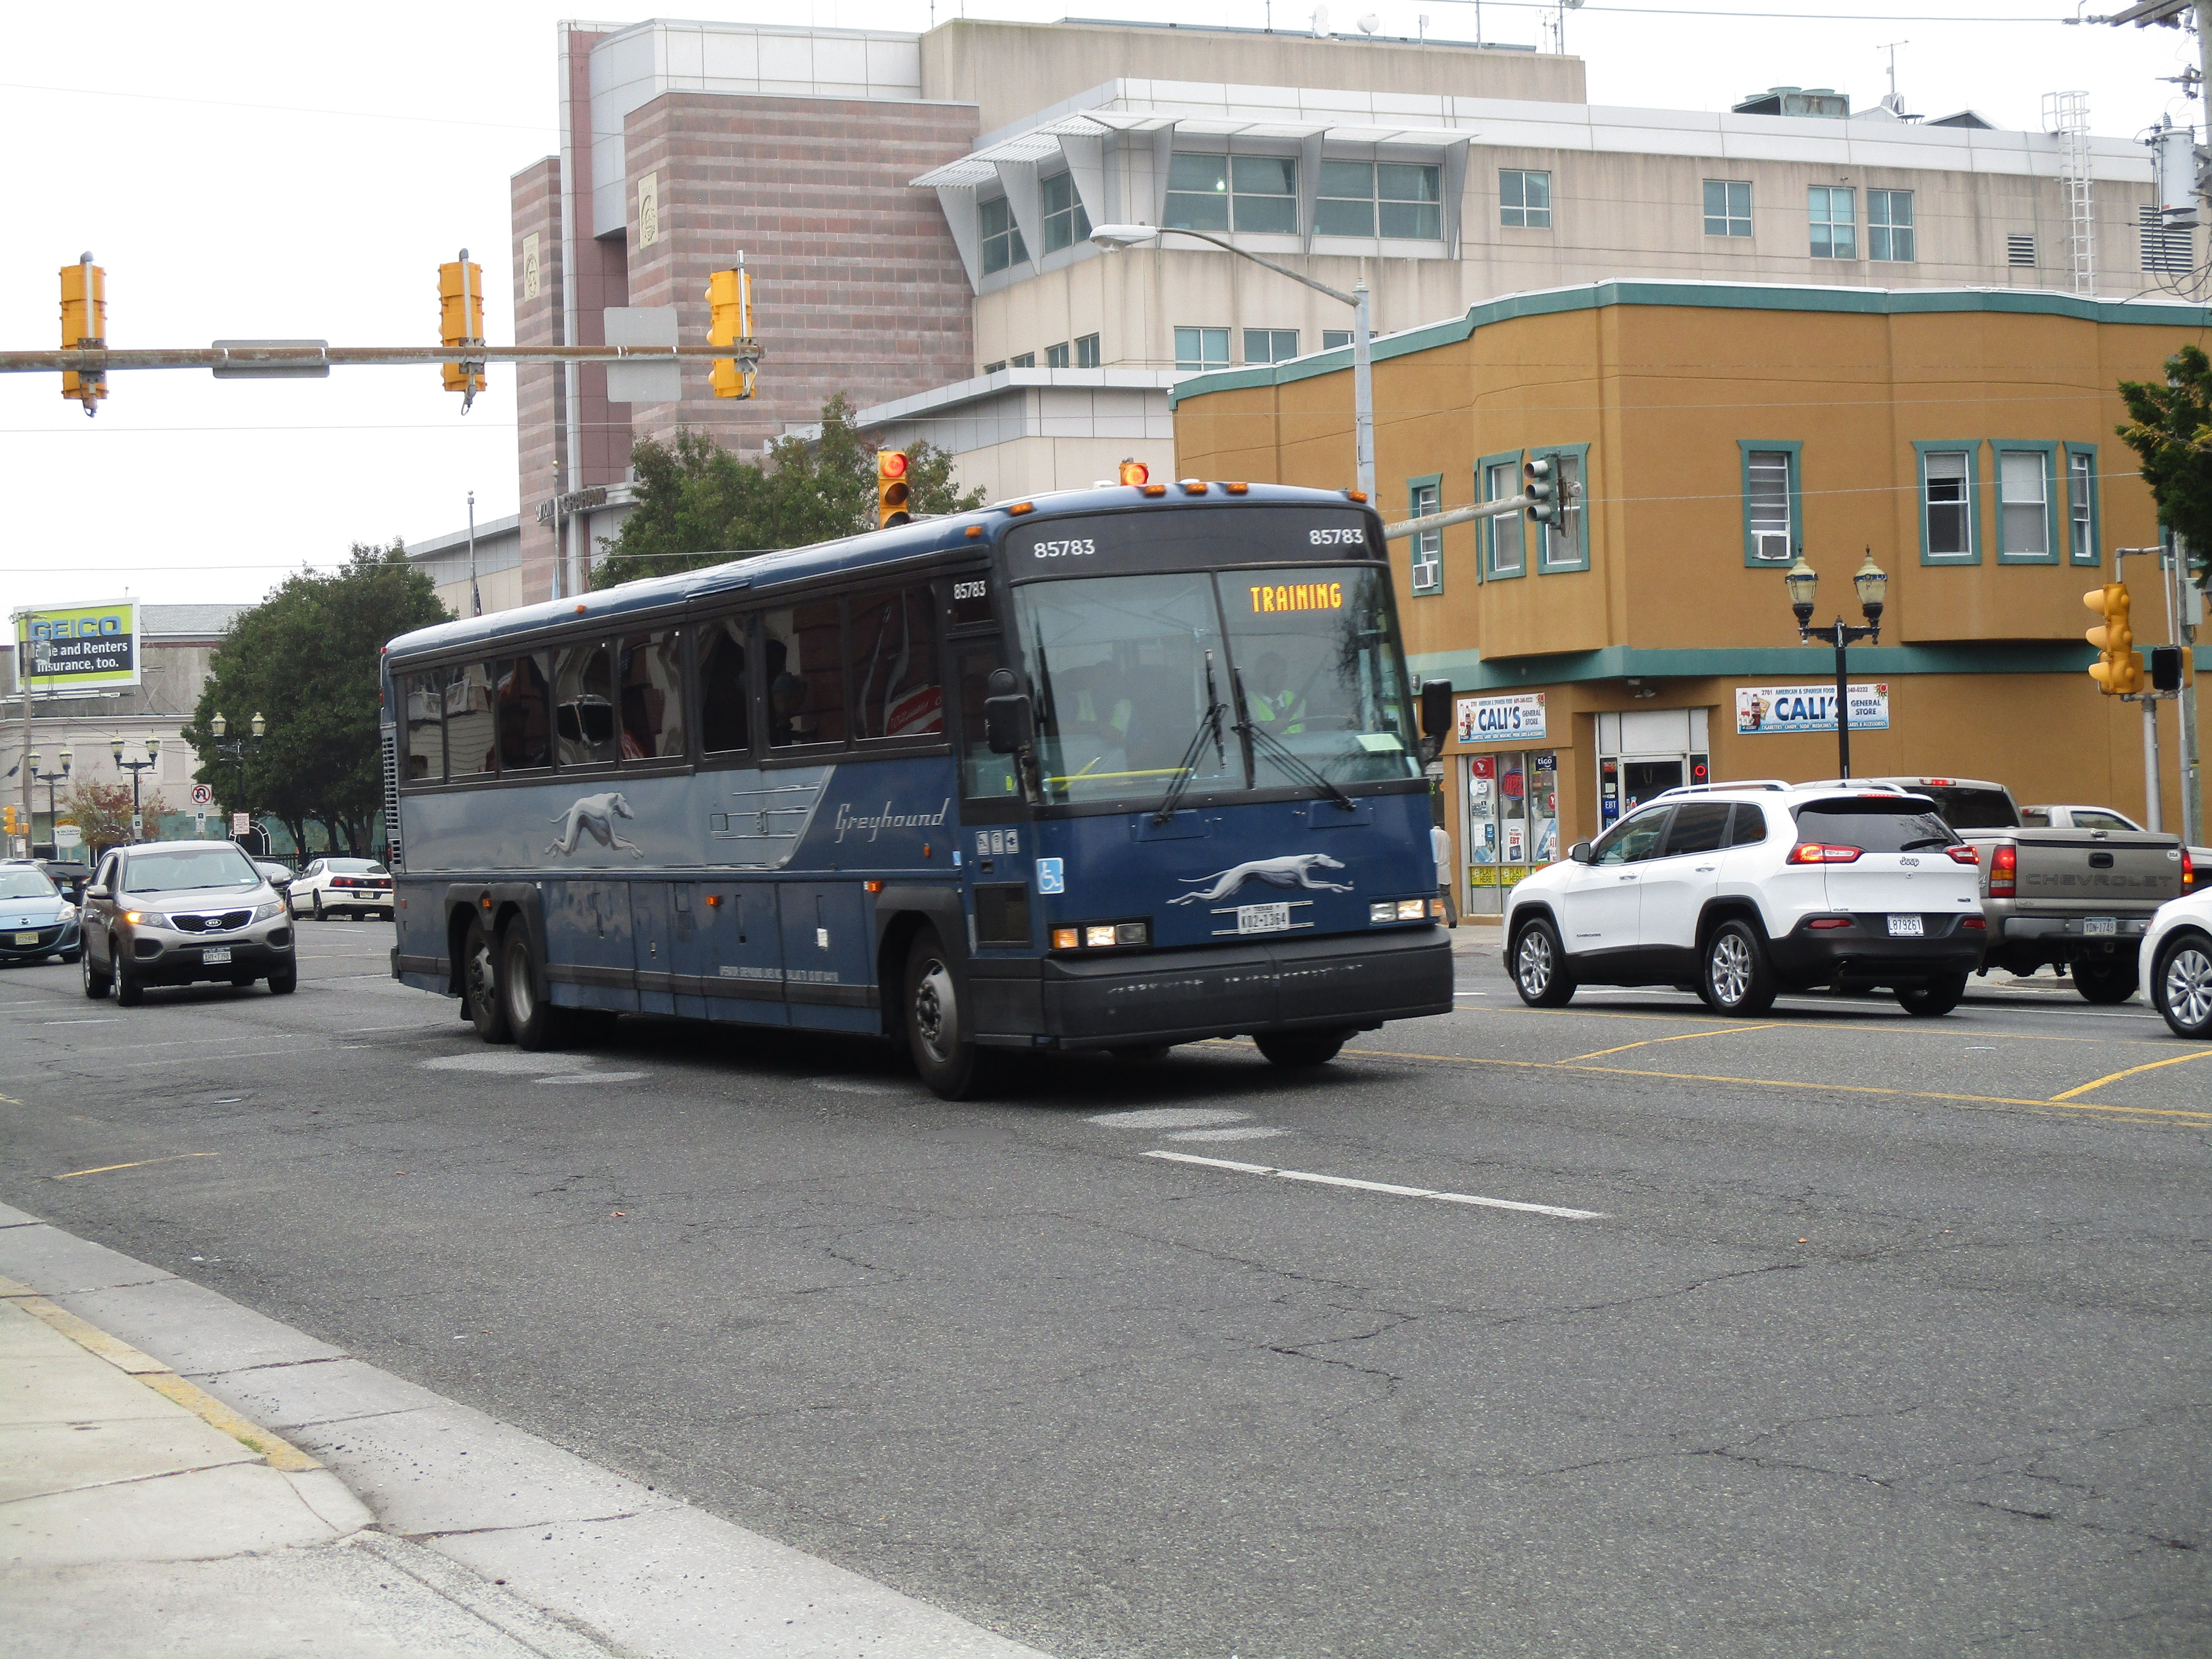 Greyhound MCI bus on Atlantic Ave. in Atlantic City,NJ